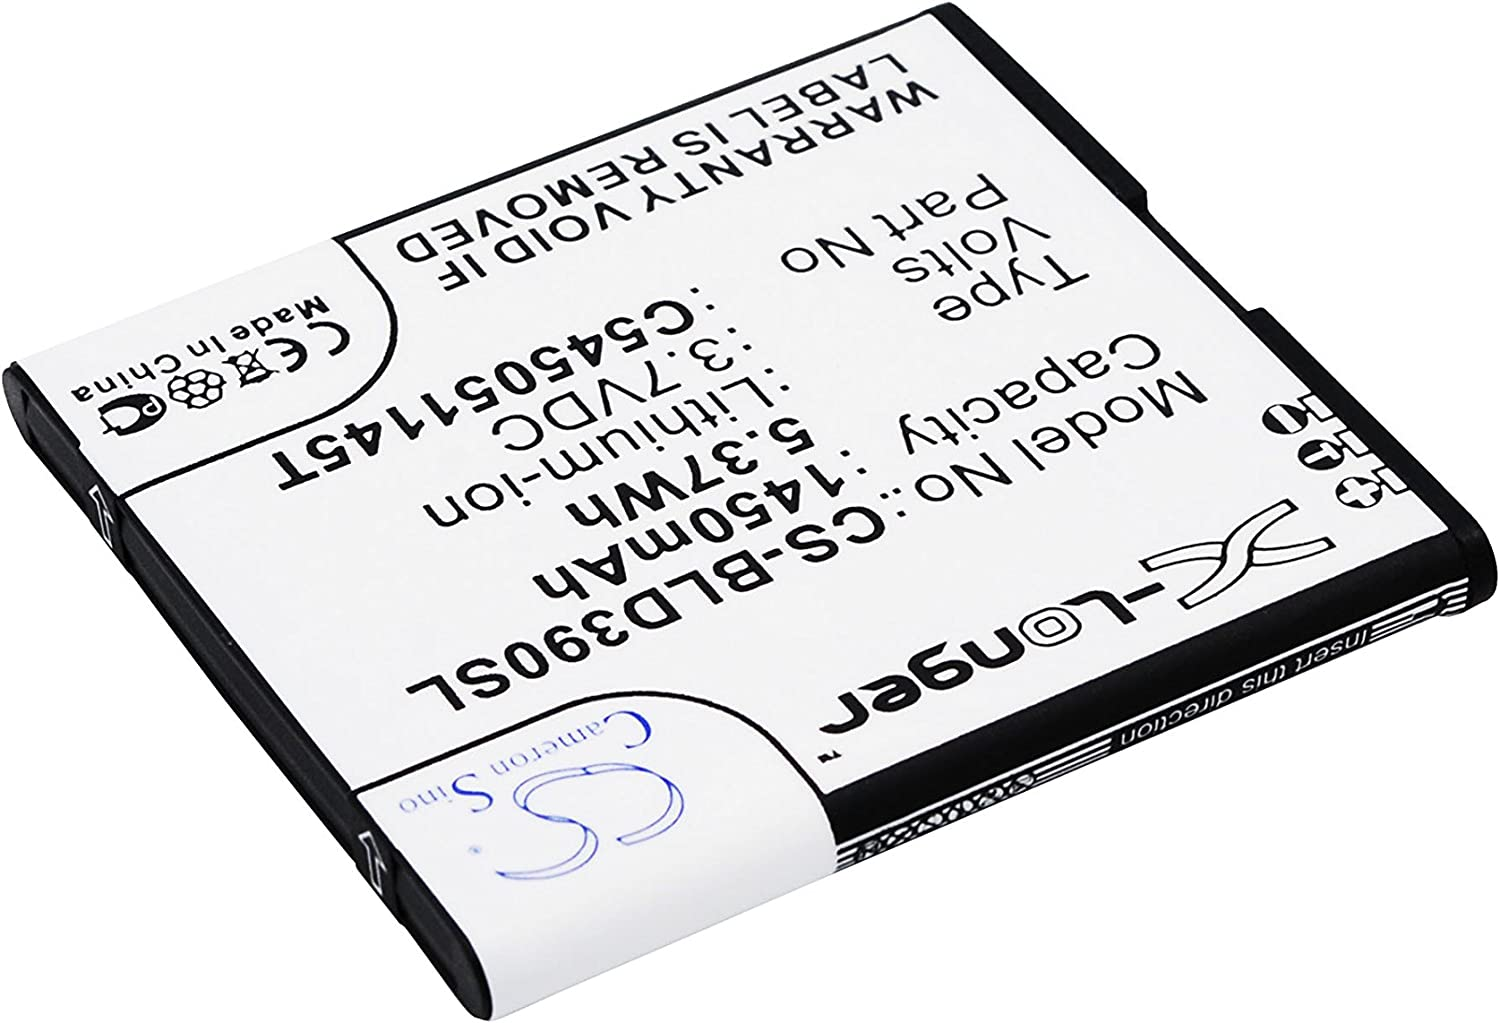 Battery Replacement for BLU D050L D050u D070 D070X D141T D352L D390U D390x Dash J Dash J 4.0 Dash JR TV Record